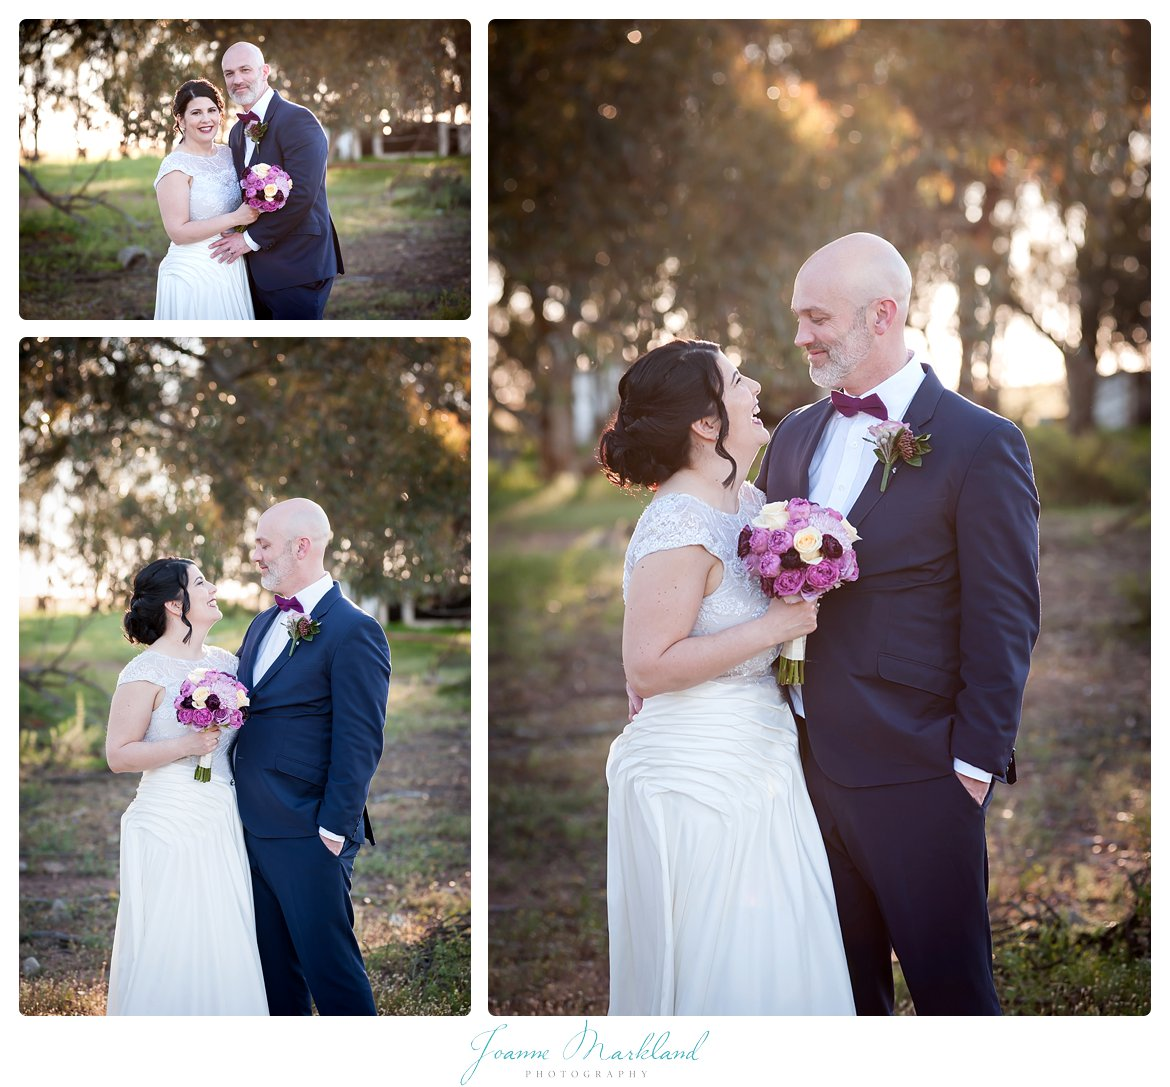 boorwater-wedding-hopefield-west-coast-cape-town-joanne-markland-photography-035